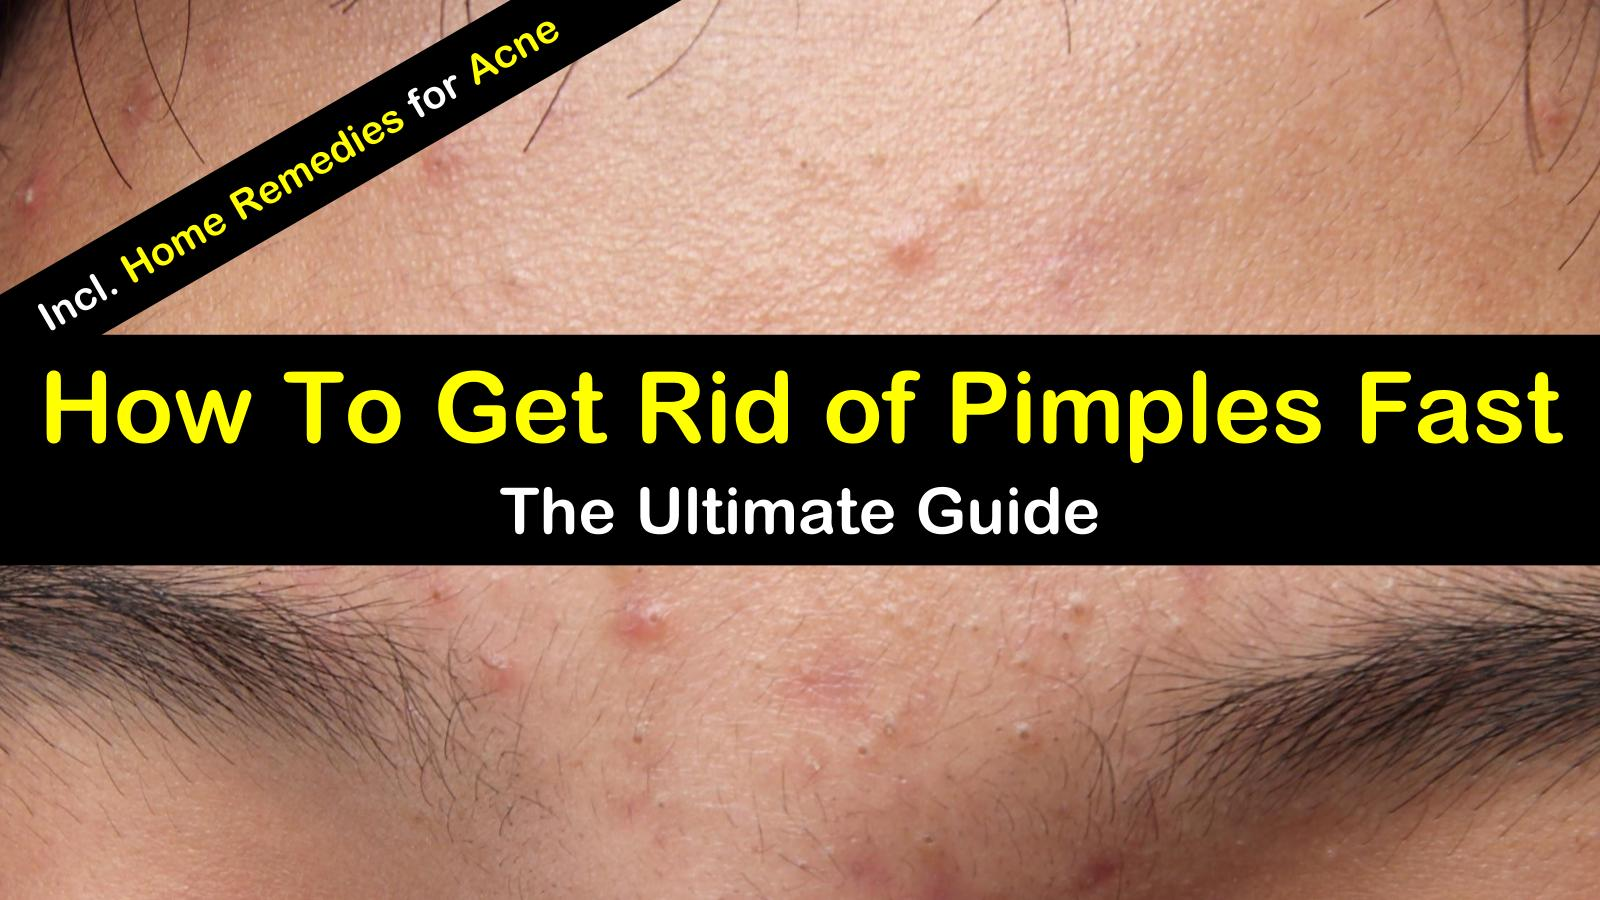 8 Great Home Remedies To Get Rid Of Pimples Fast